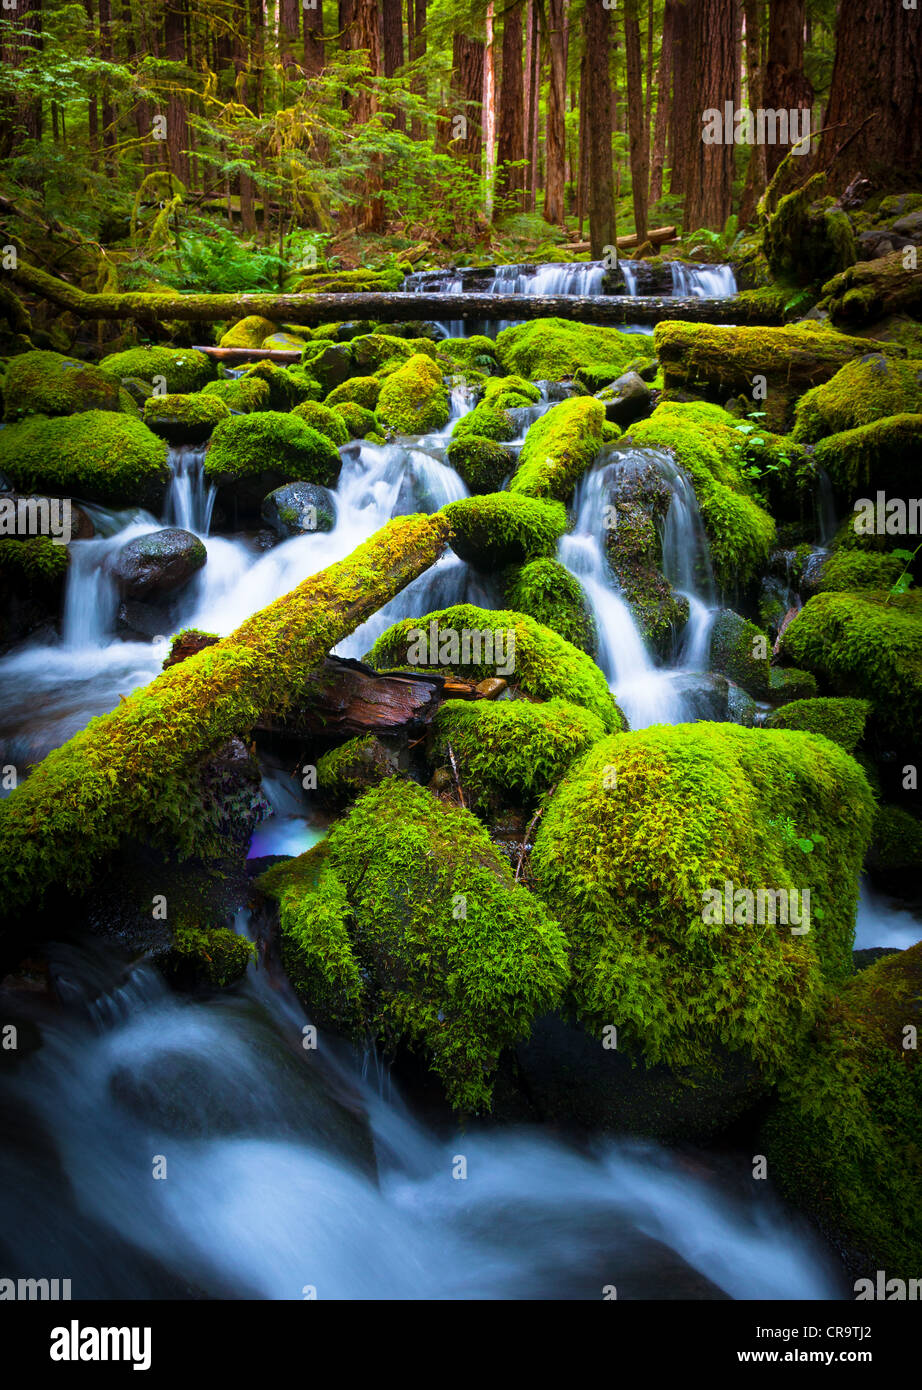 Small creek near Sol Duc Falls in Olympic National Park, Washington - Stock Image